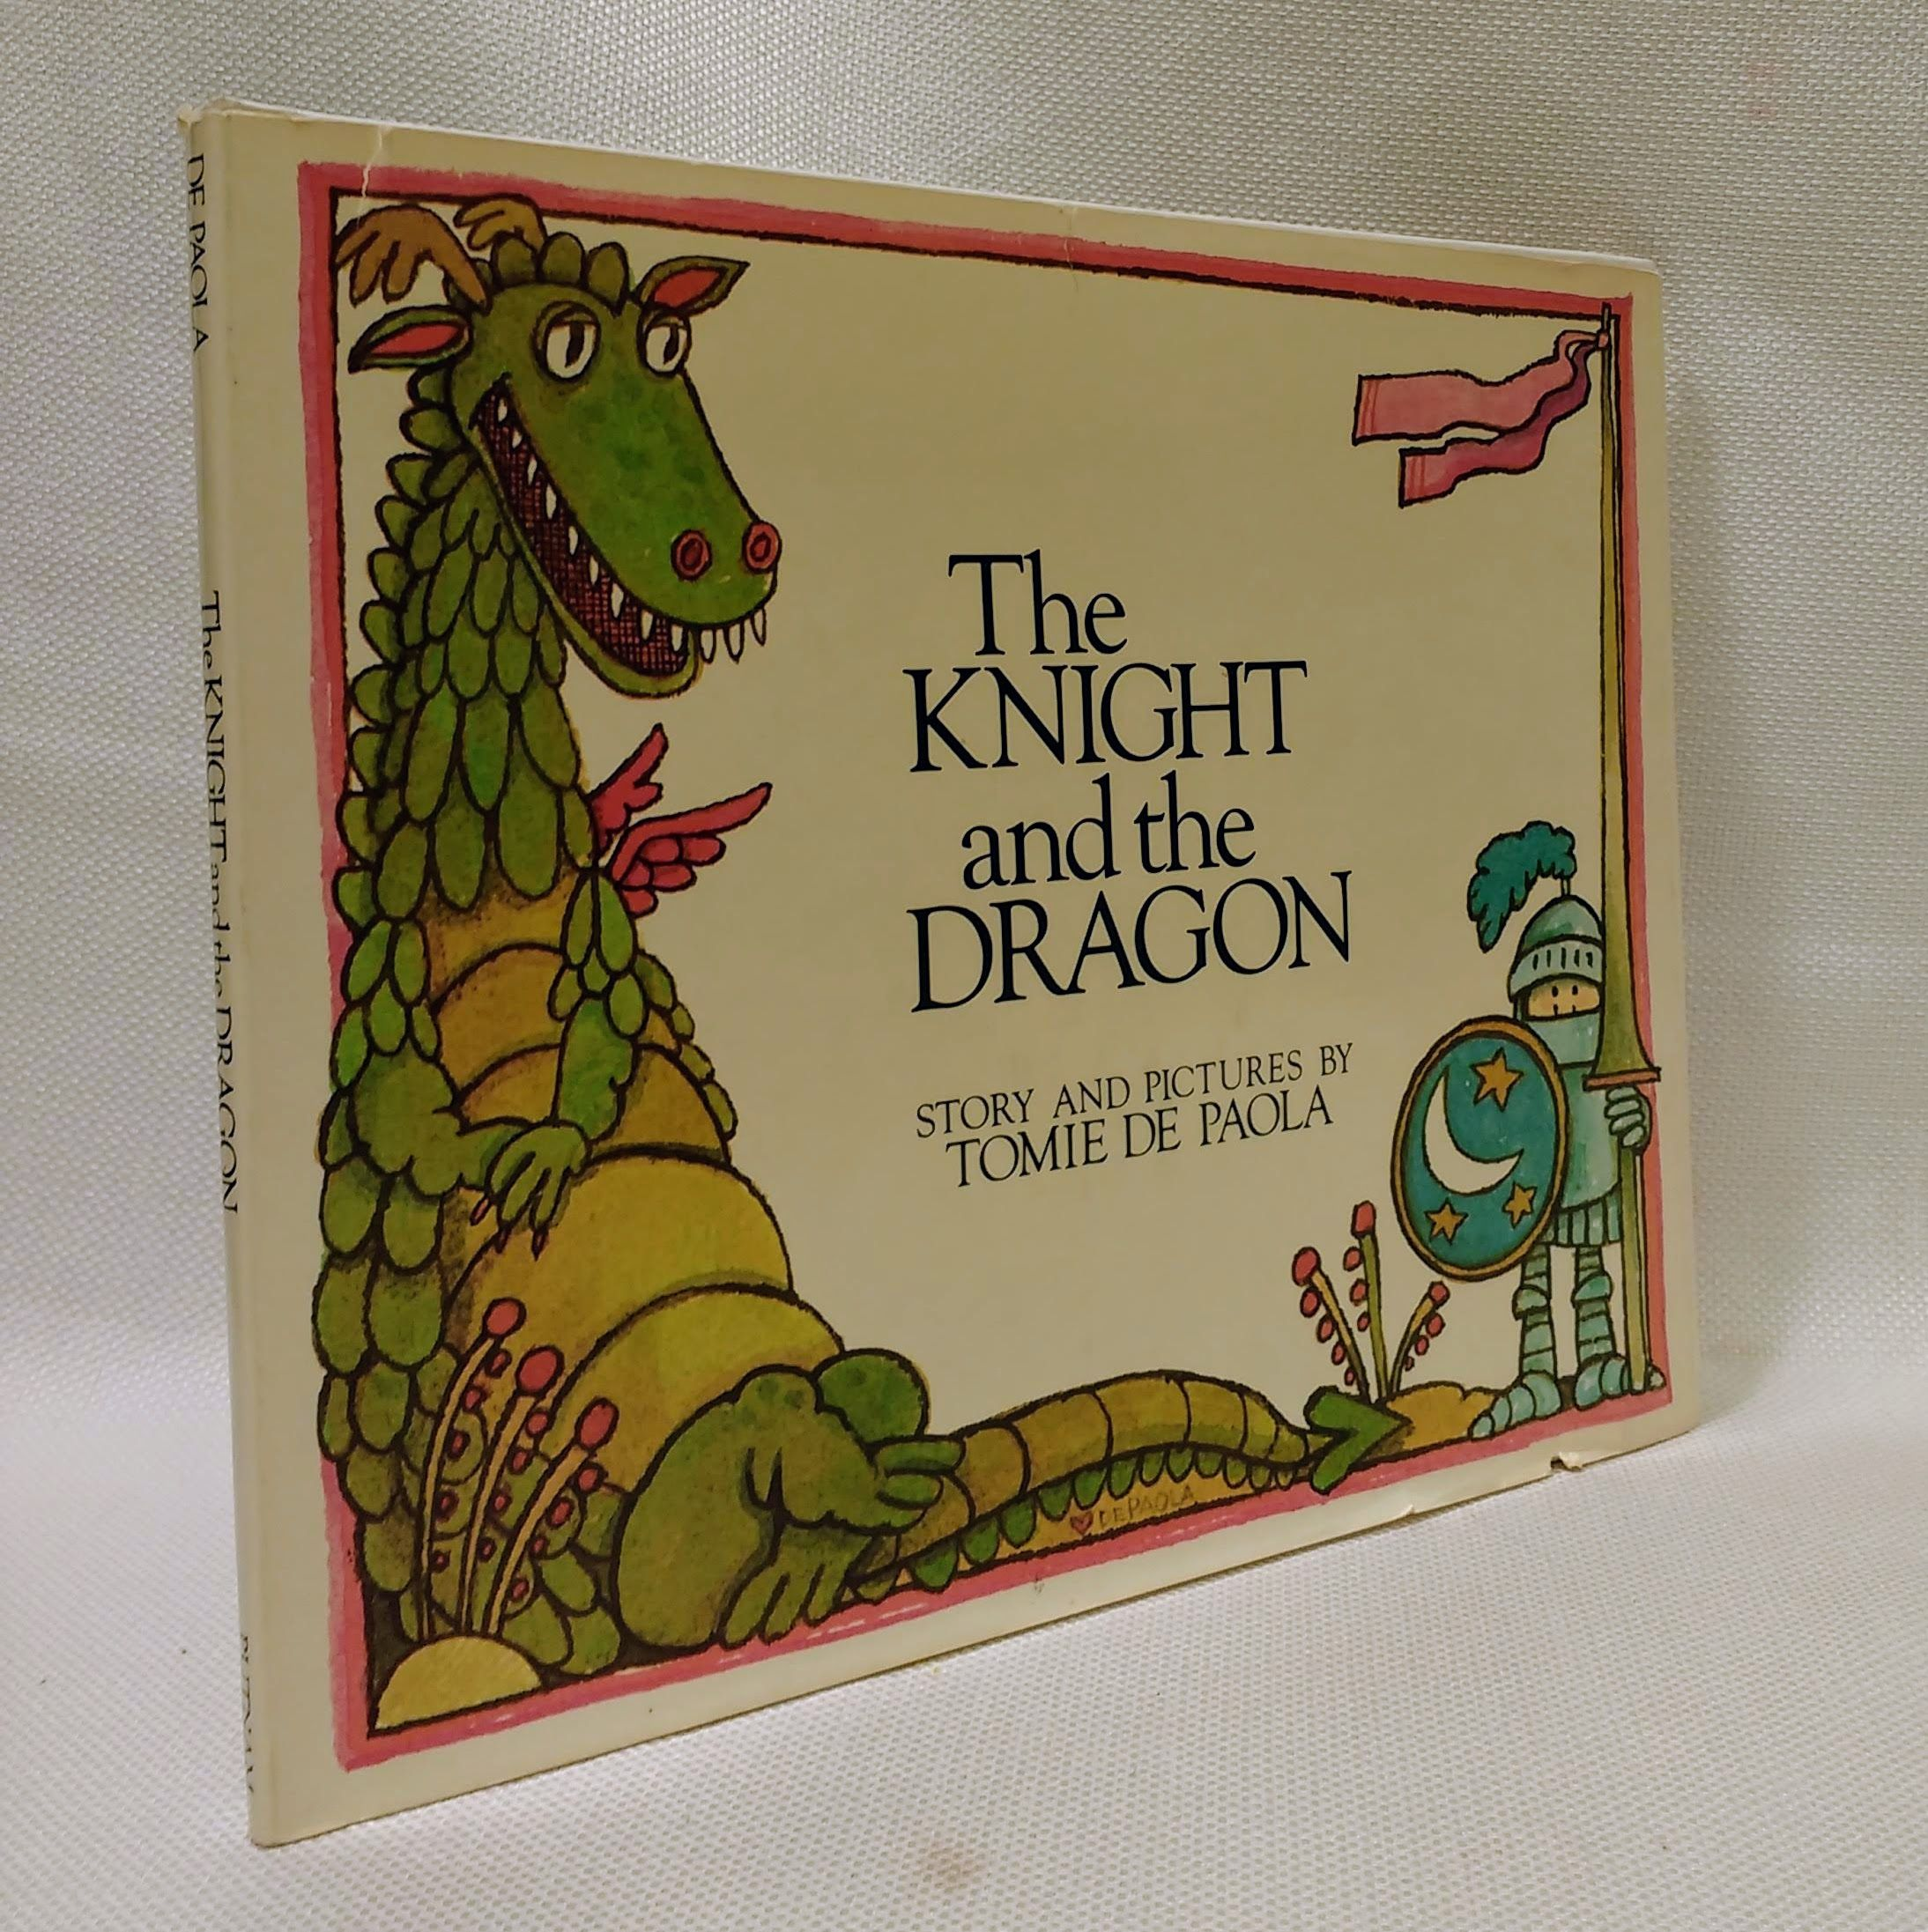 The Knight and the Dragon, dePaola, Tomie